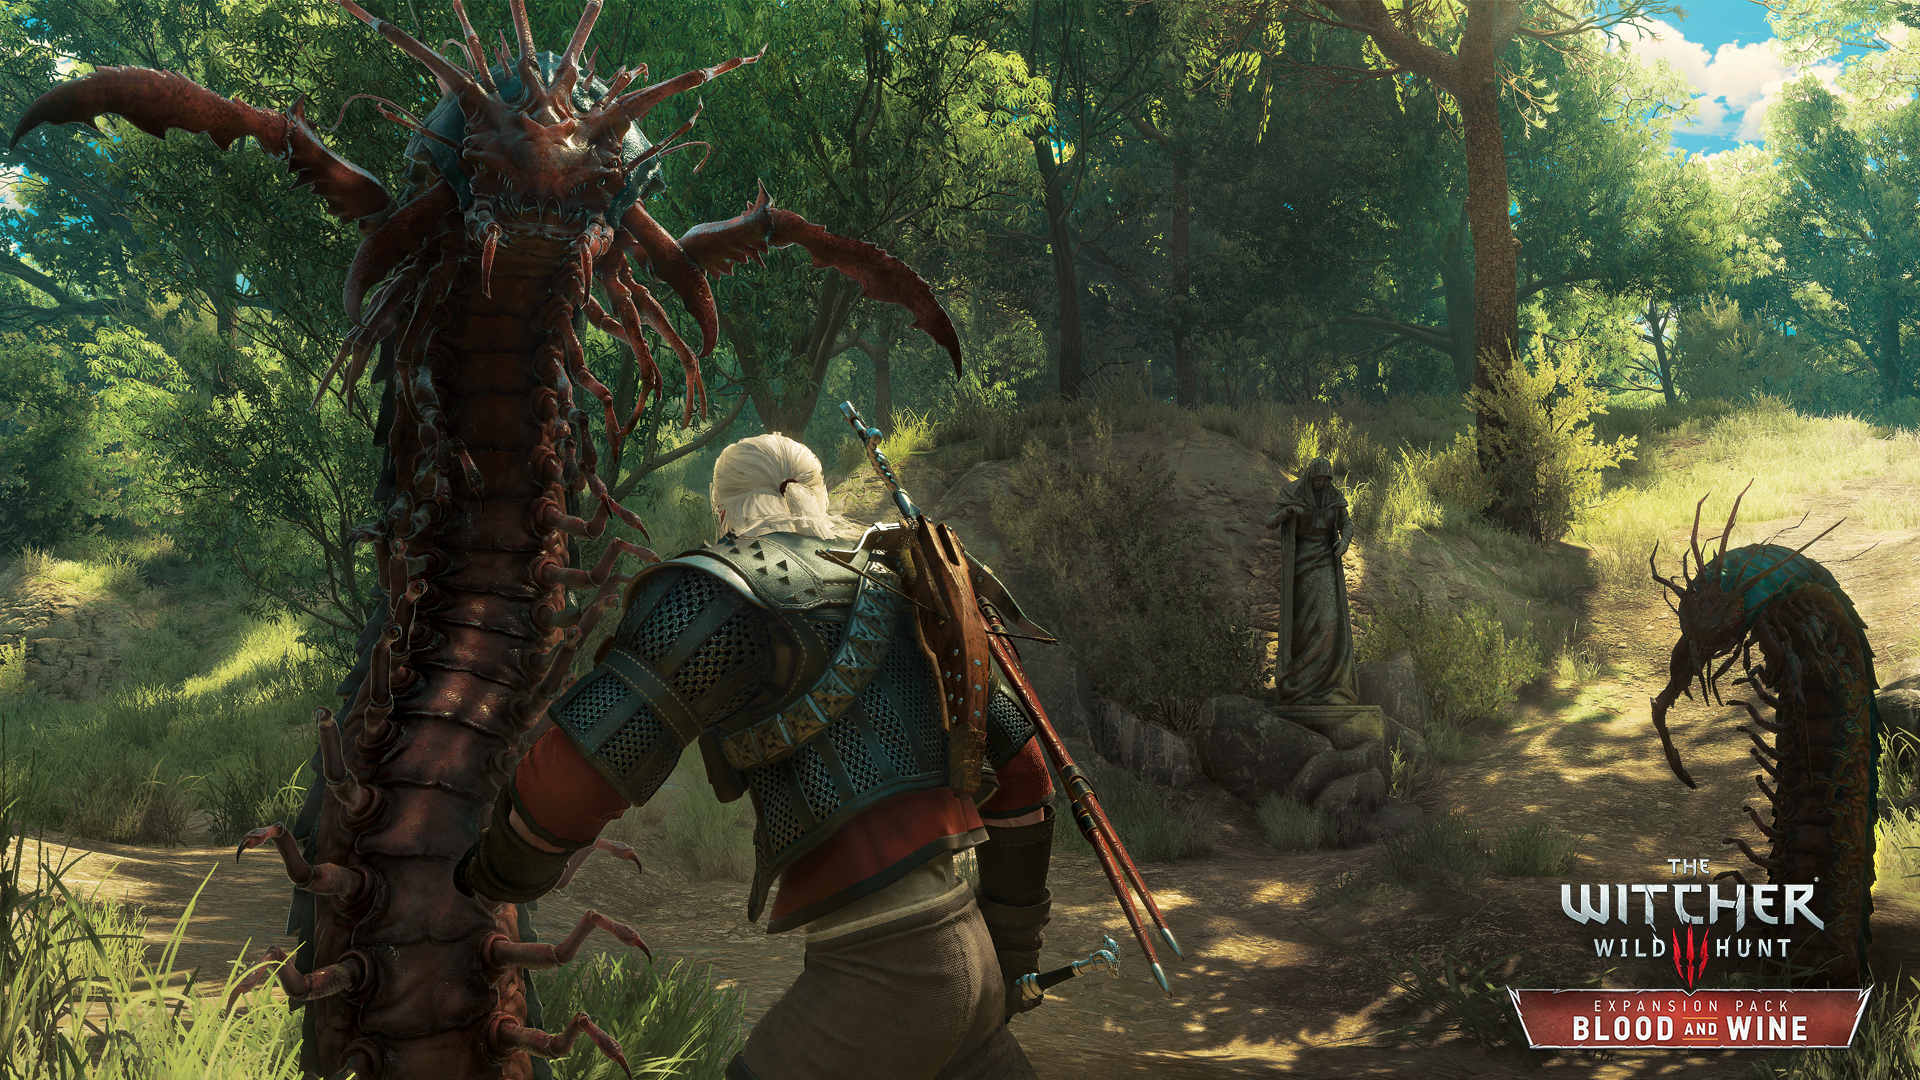 The Witcher 3 Wild Hunt Images